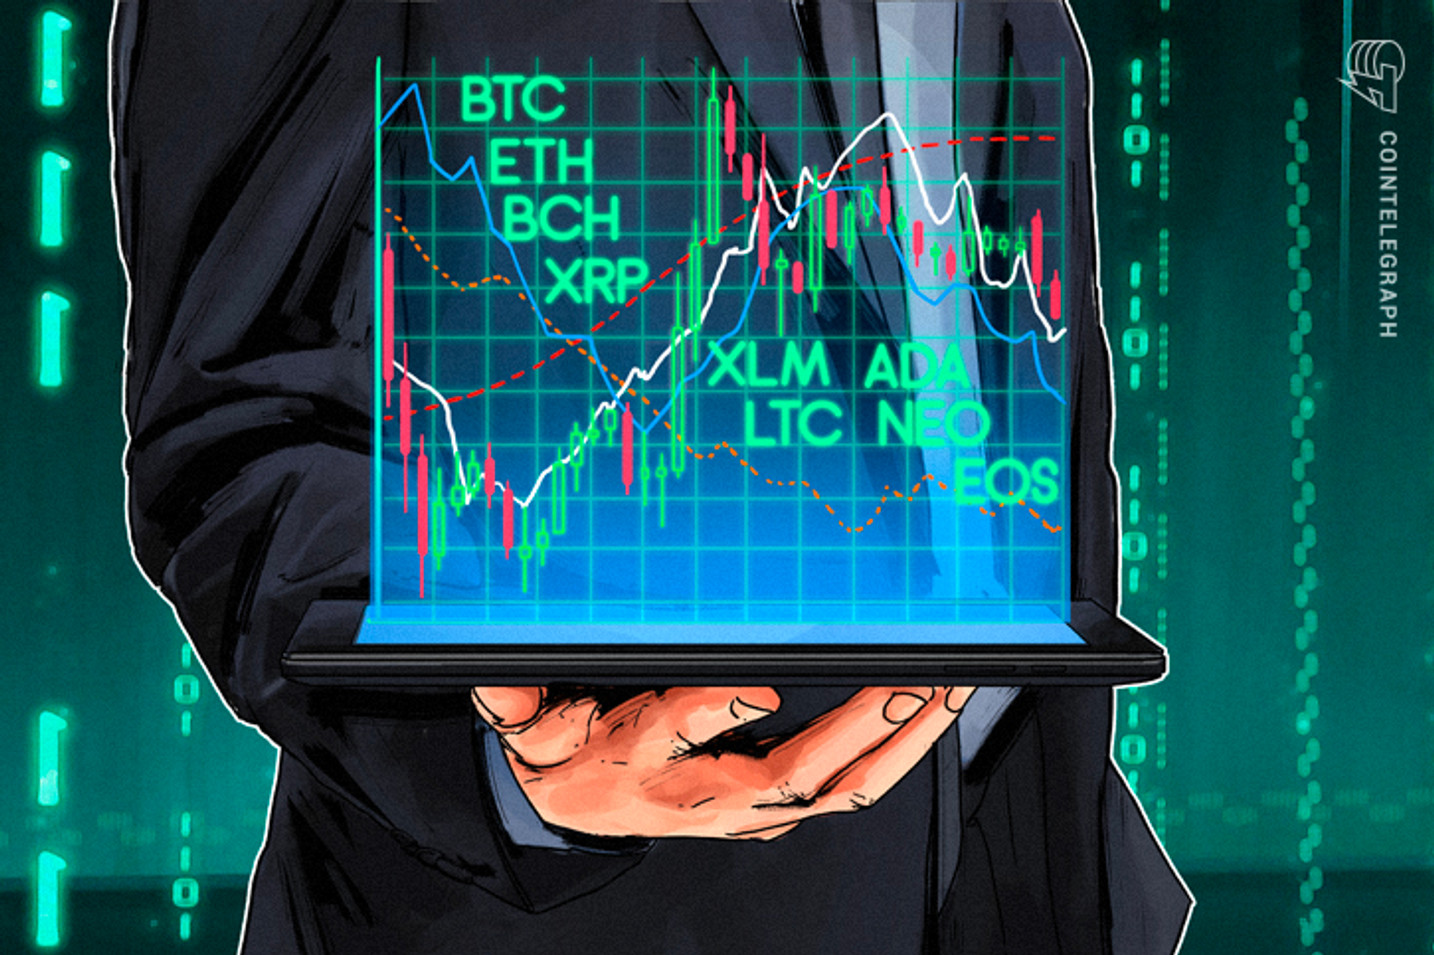 Bitcoin, Ethereum, Bitcoin Cash, Ripple, Stellar, Litecoin, Cardano, NEO, EOS: Price Analysis, Feb. 26